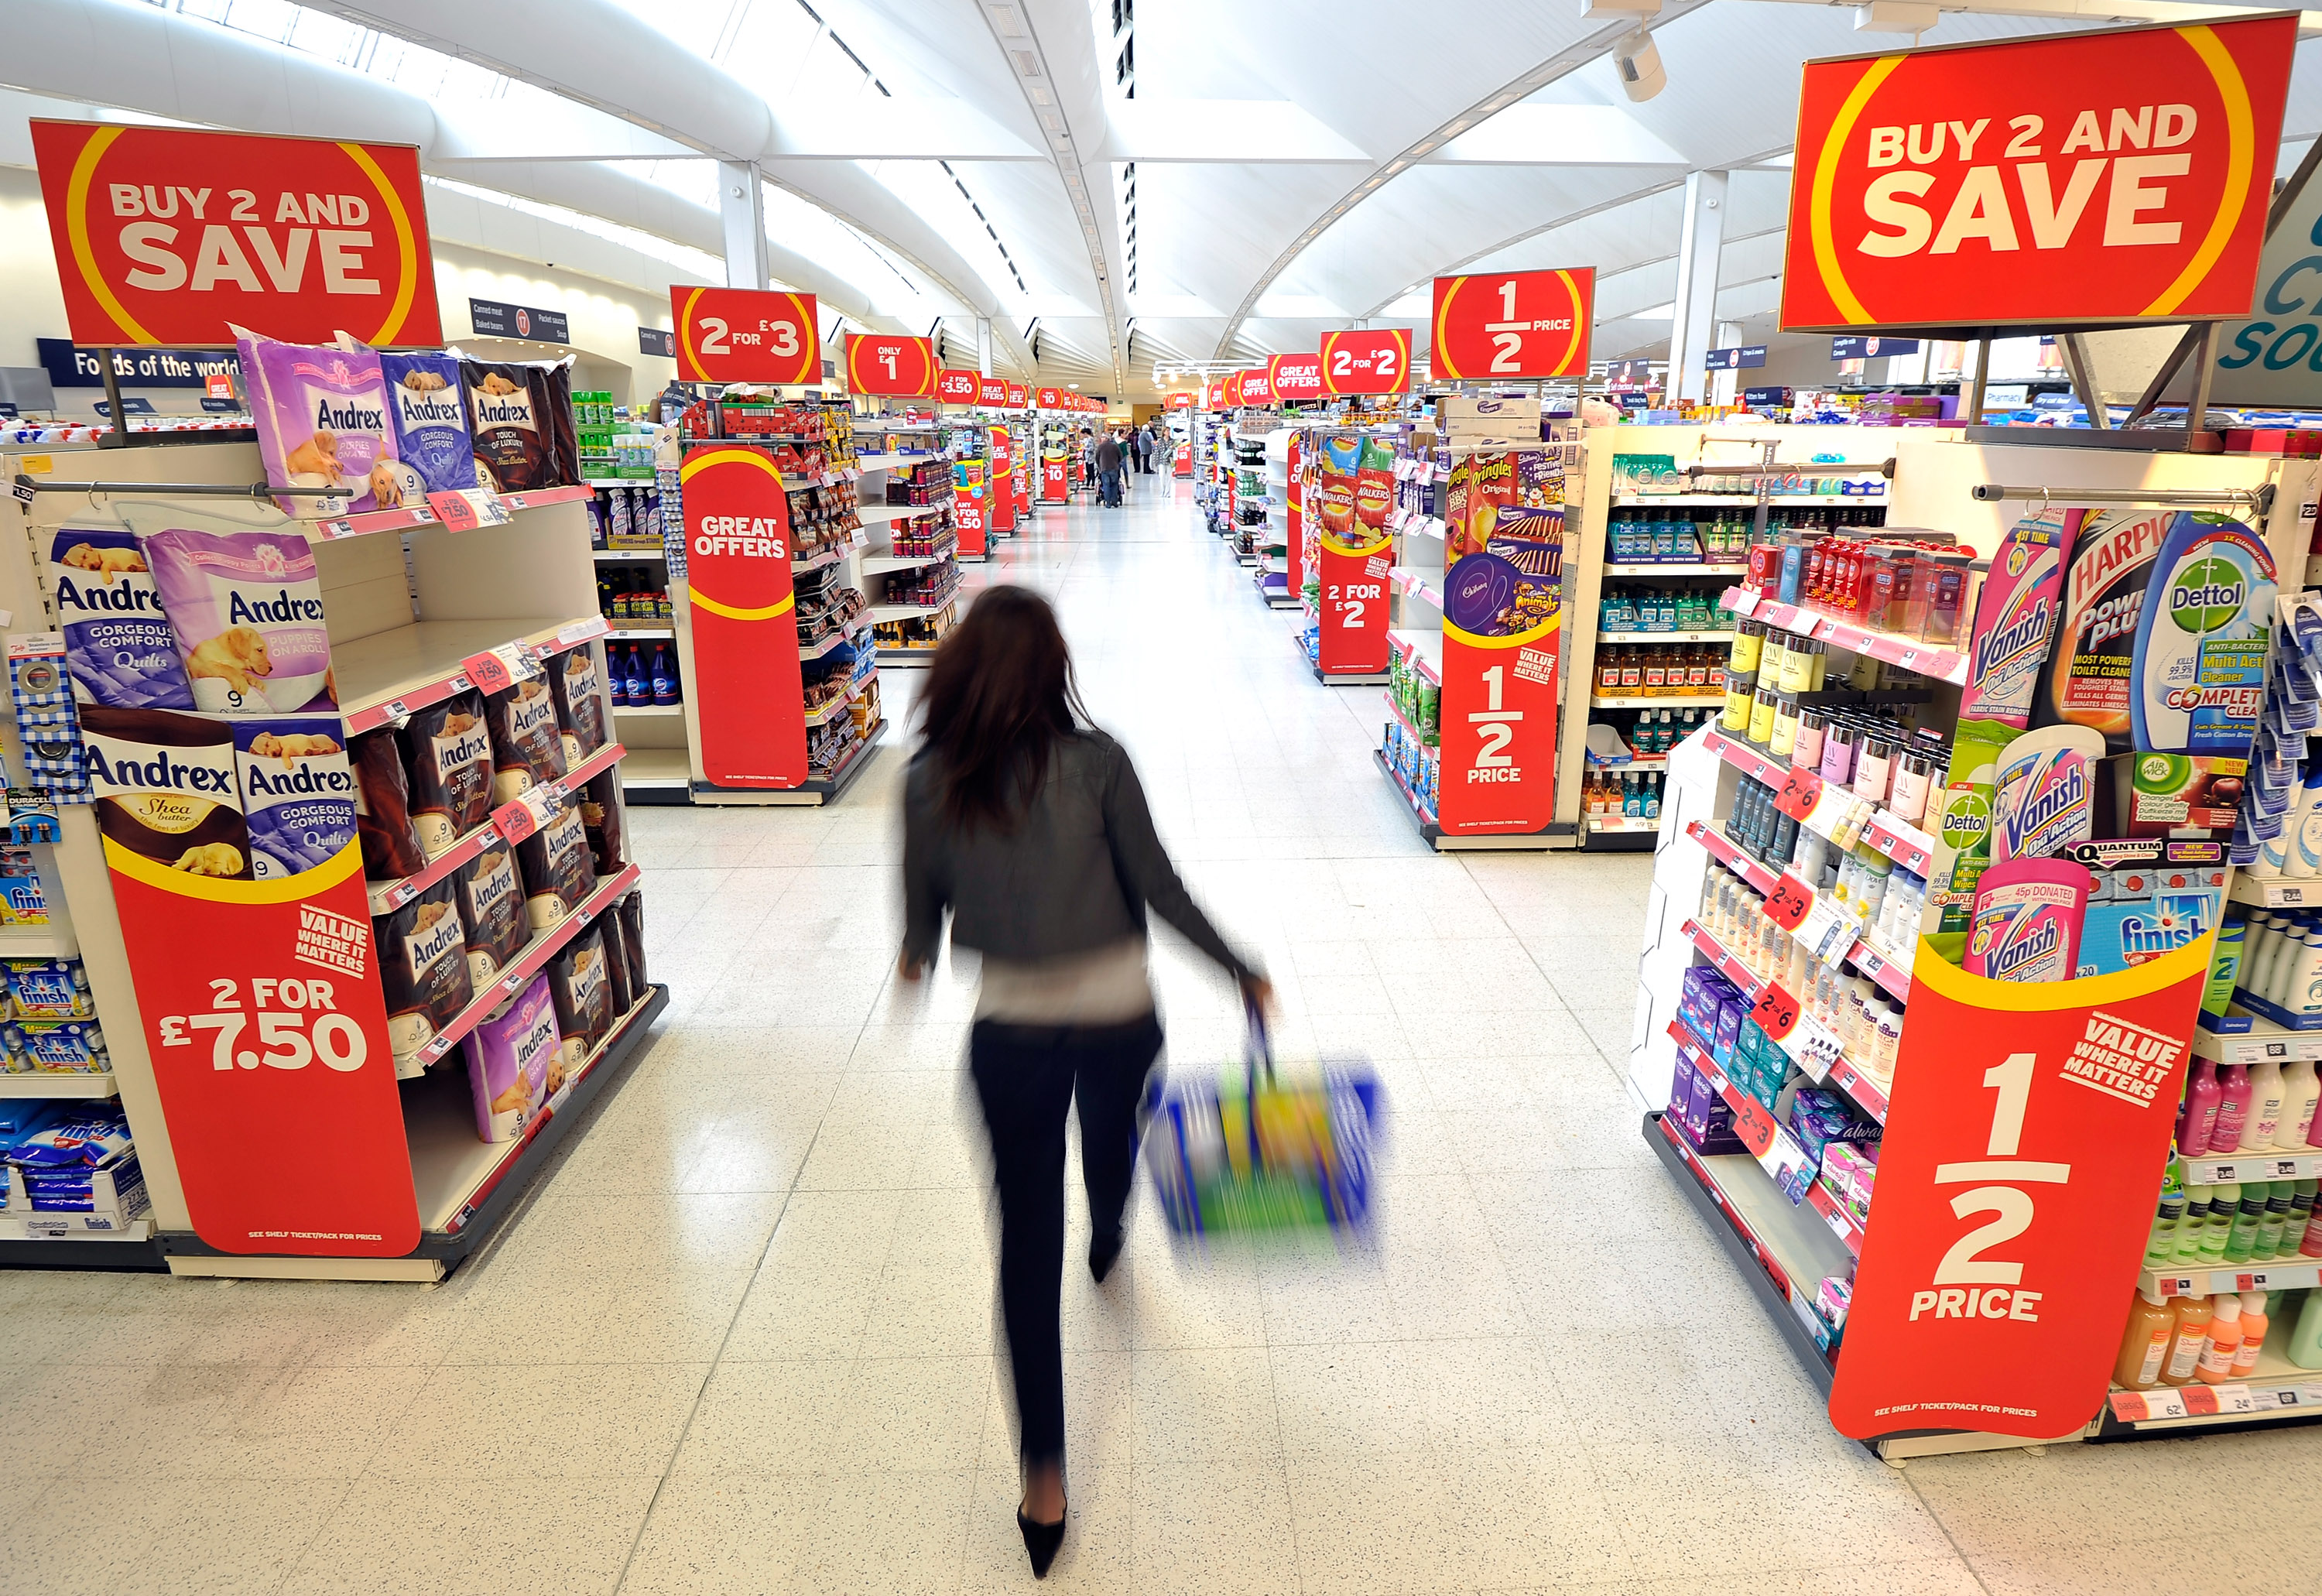 Nomi Introduces Proximity Beacons To Help Retailers Market To Customers